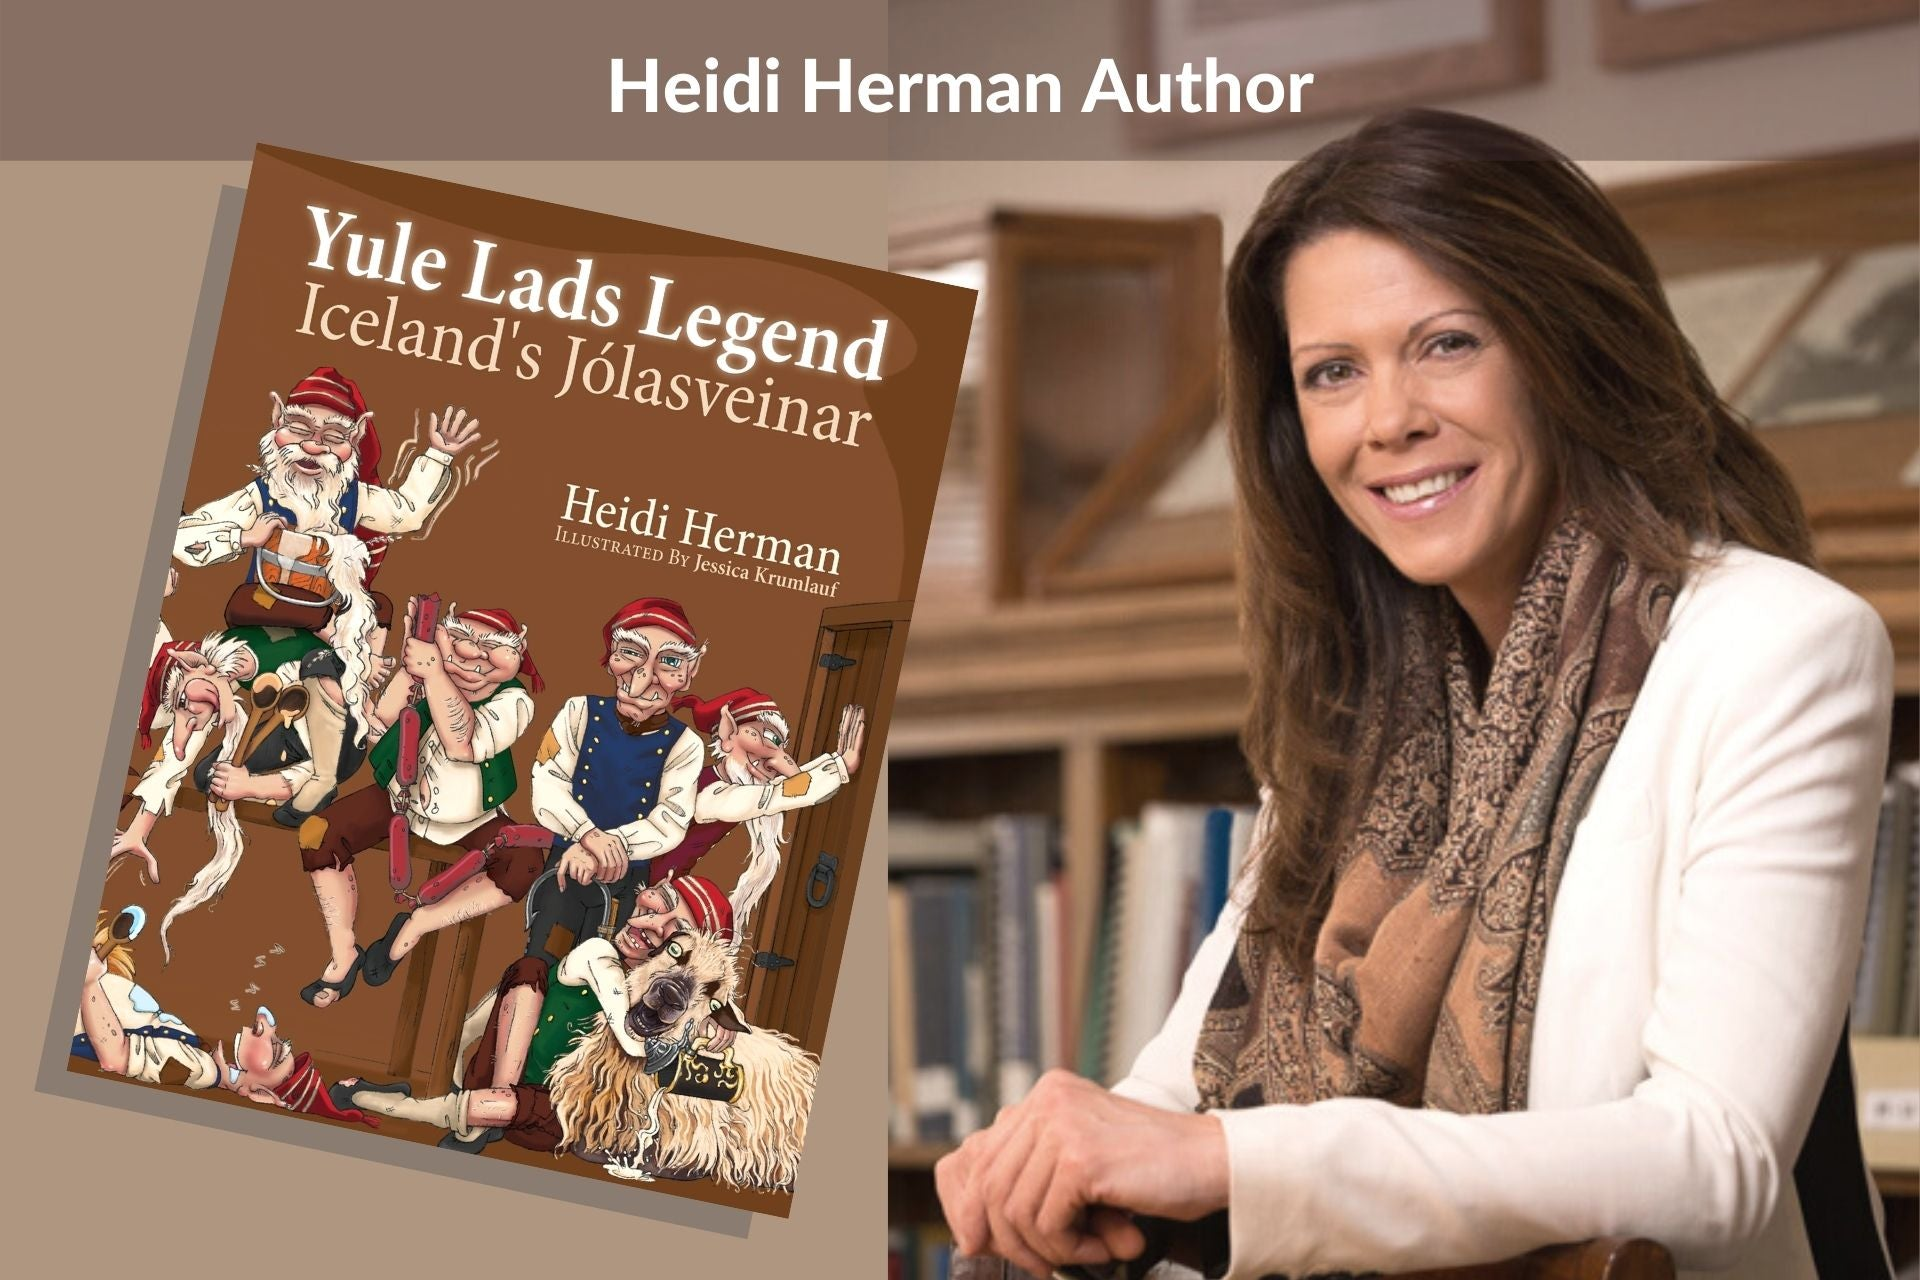 Heidi Herman Author